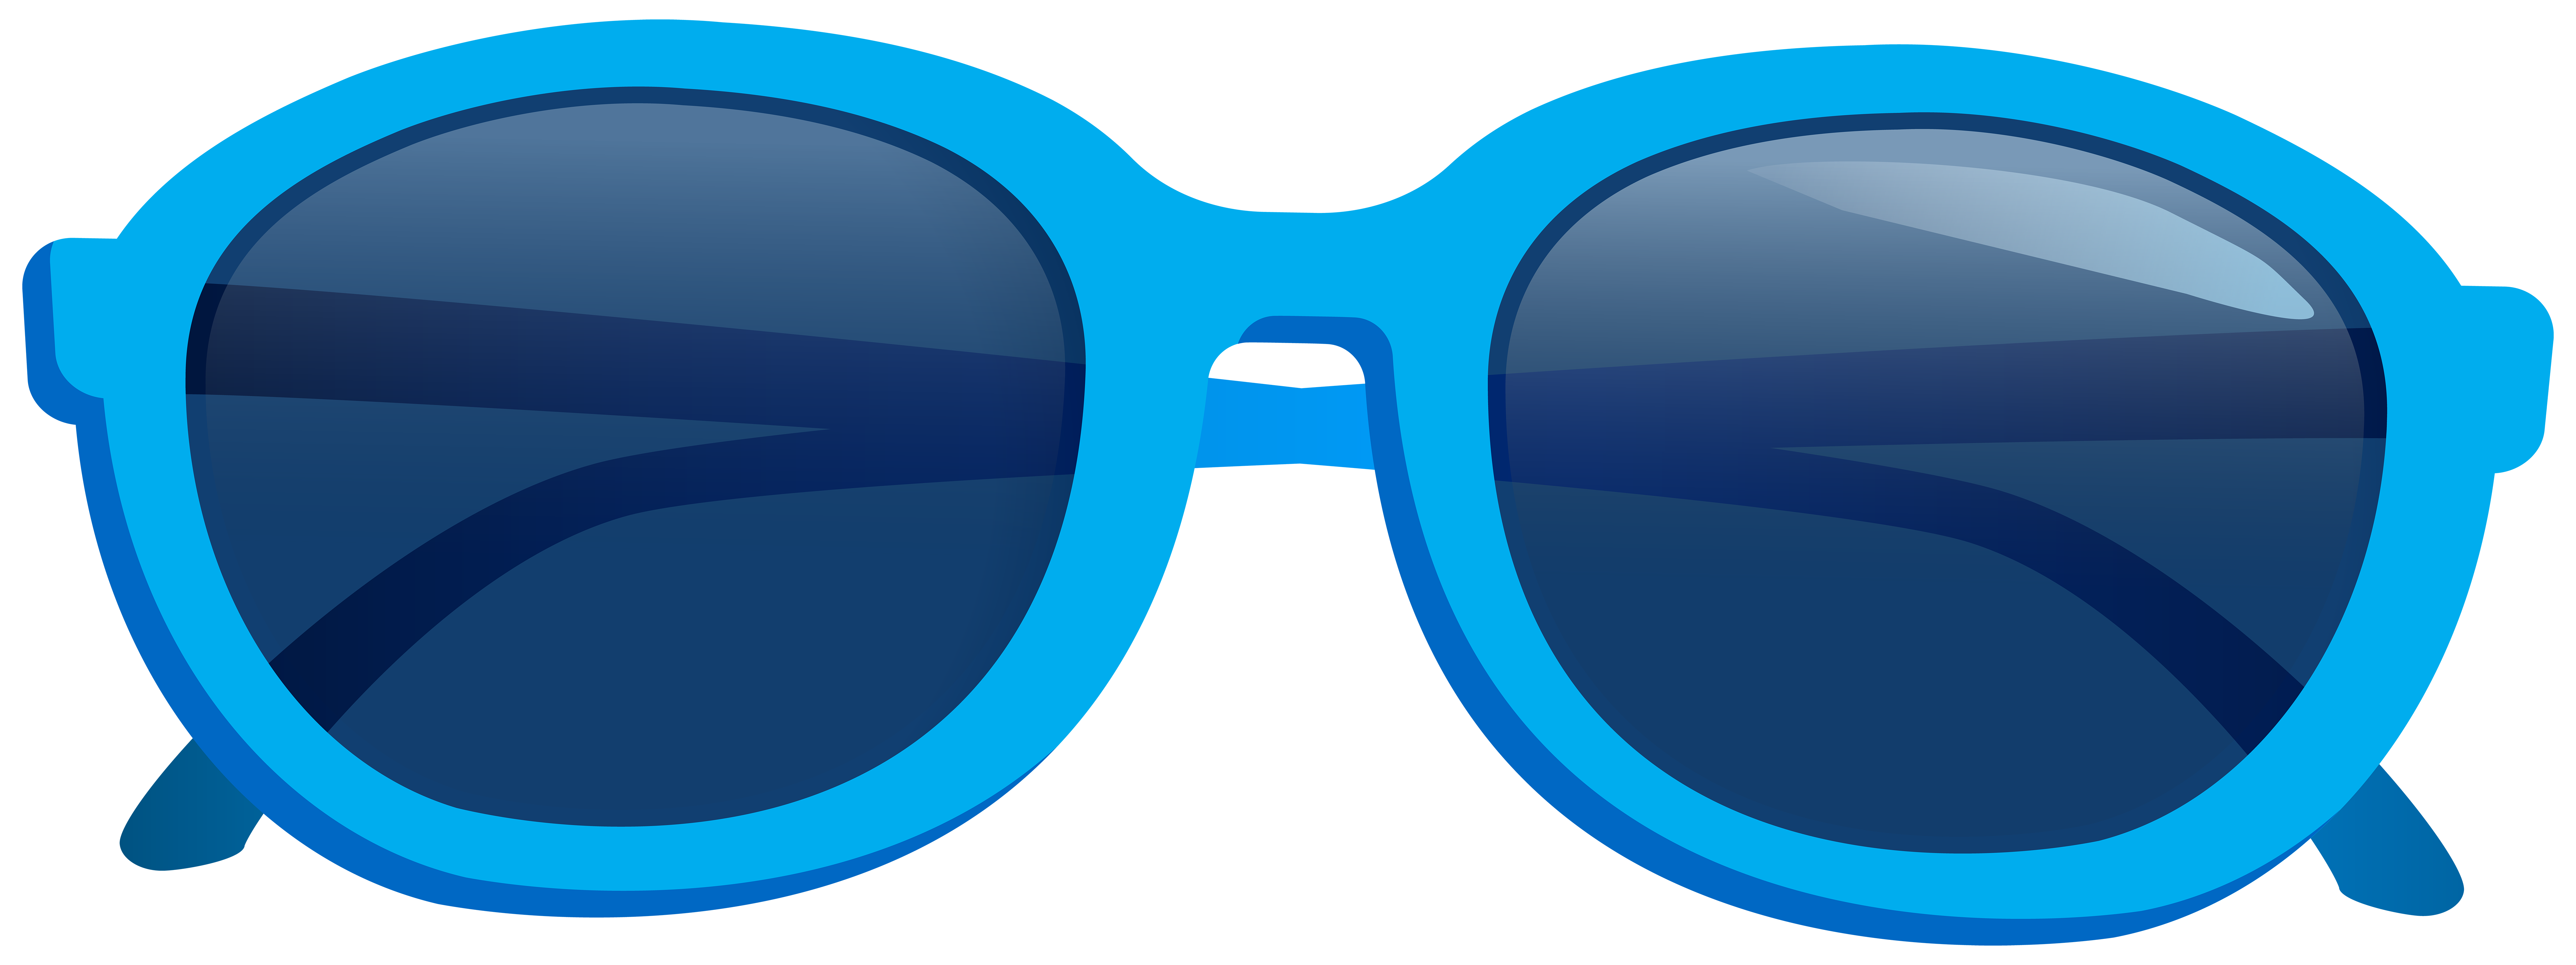 Png image gallery yopriceville. Blue clipart sunglasses